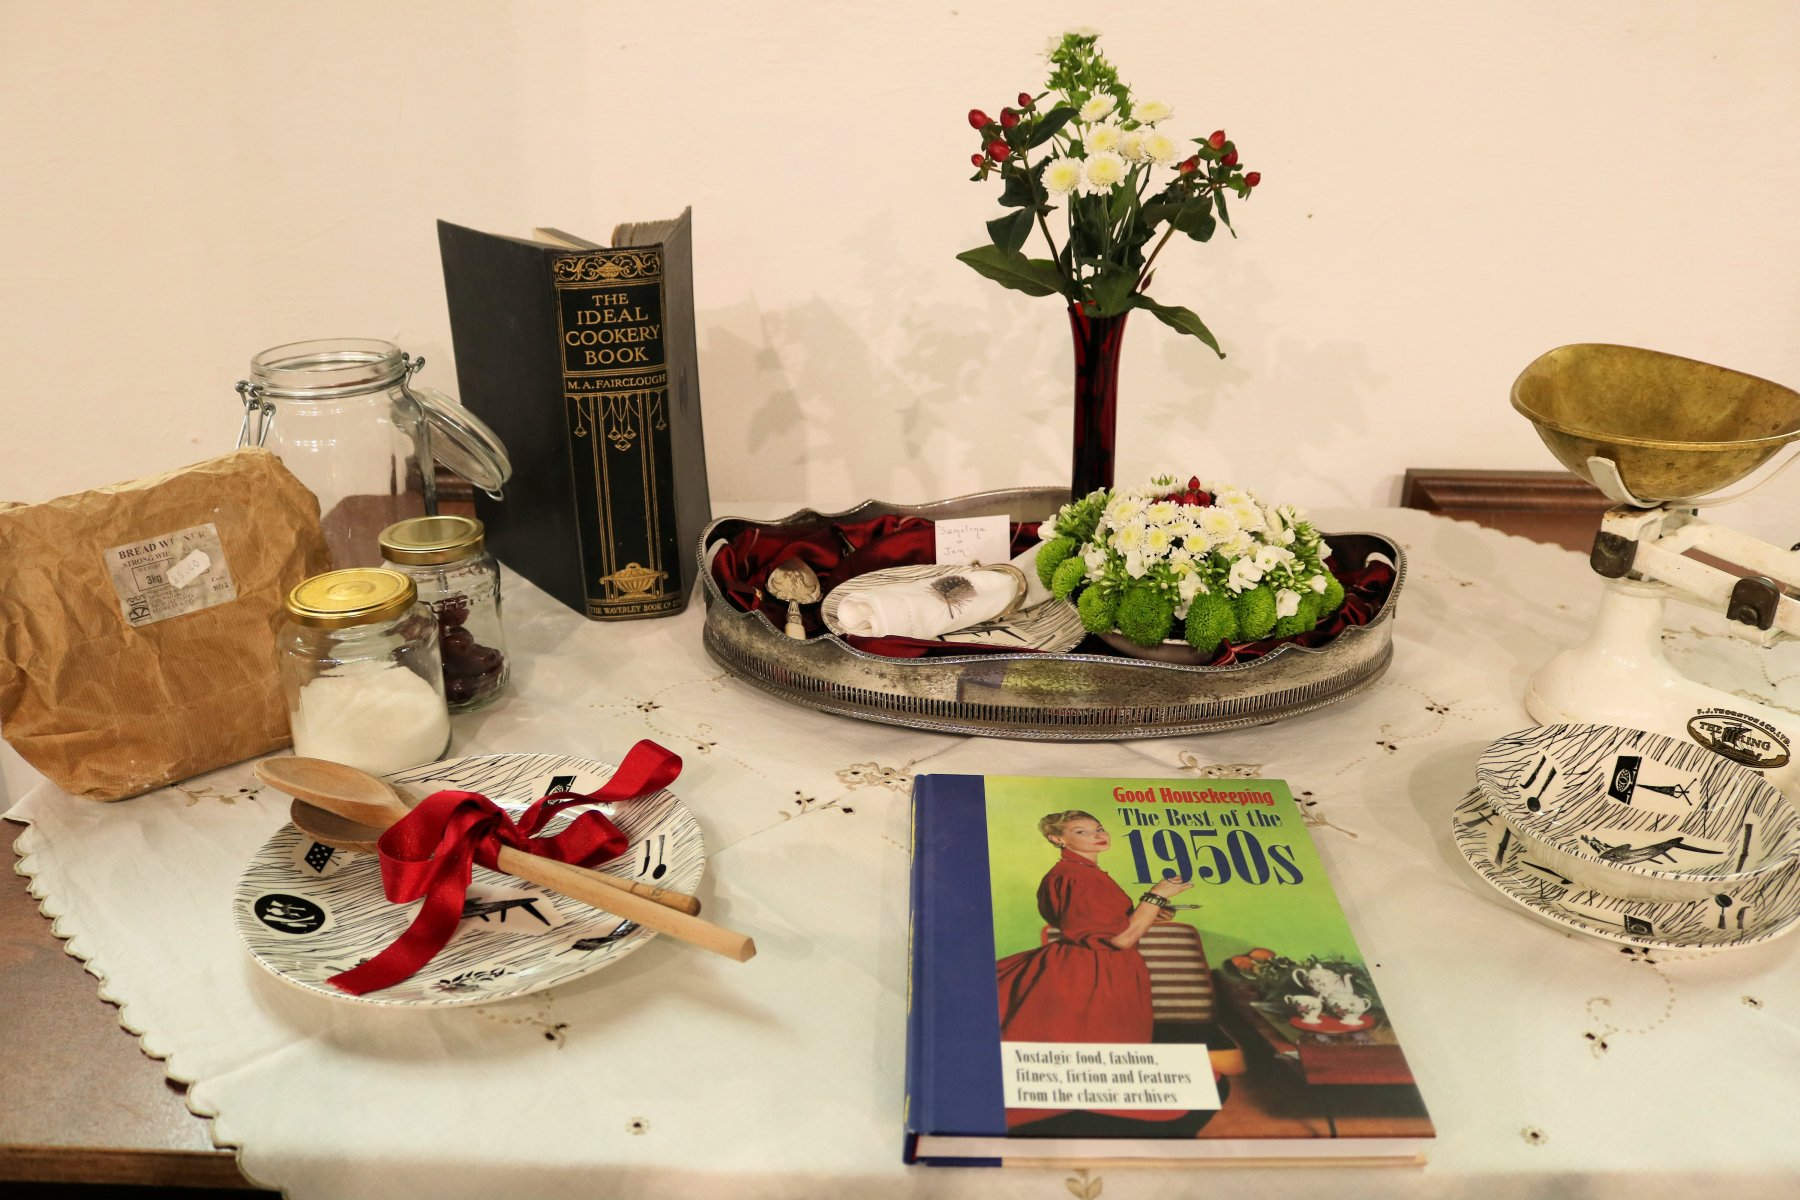 1950's cookery